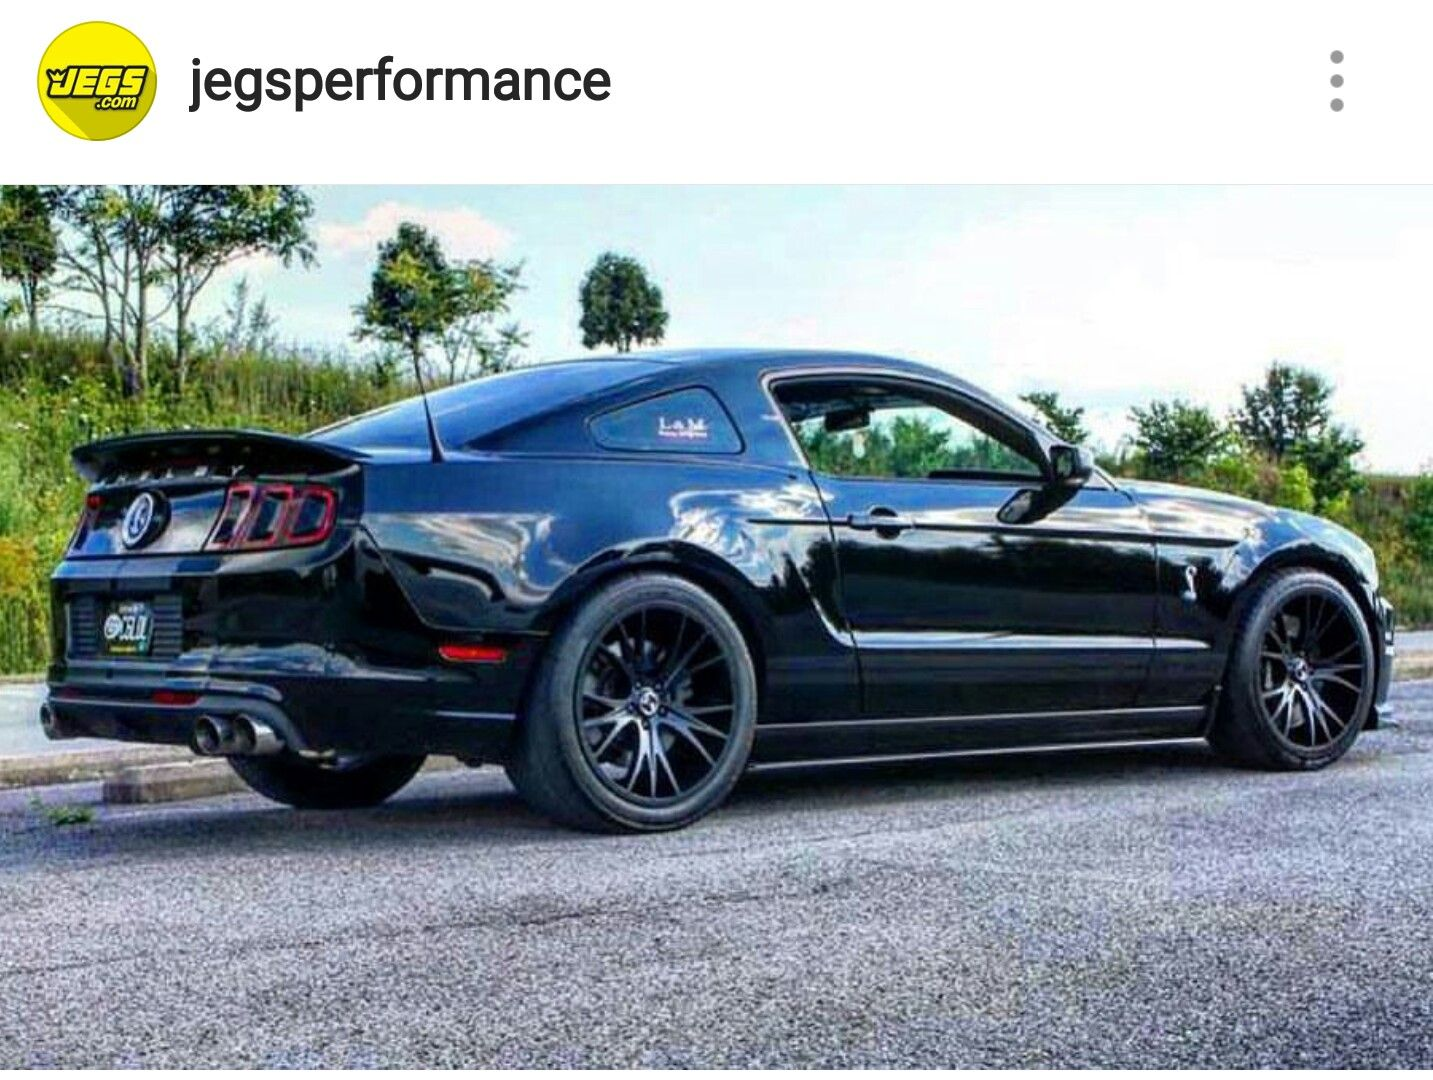 Pin By Lucas Castilhone On Mustangs Ford Mustang Shelby Gt500 Ford Shelby Gt 500 Ford Mustang